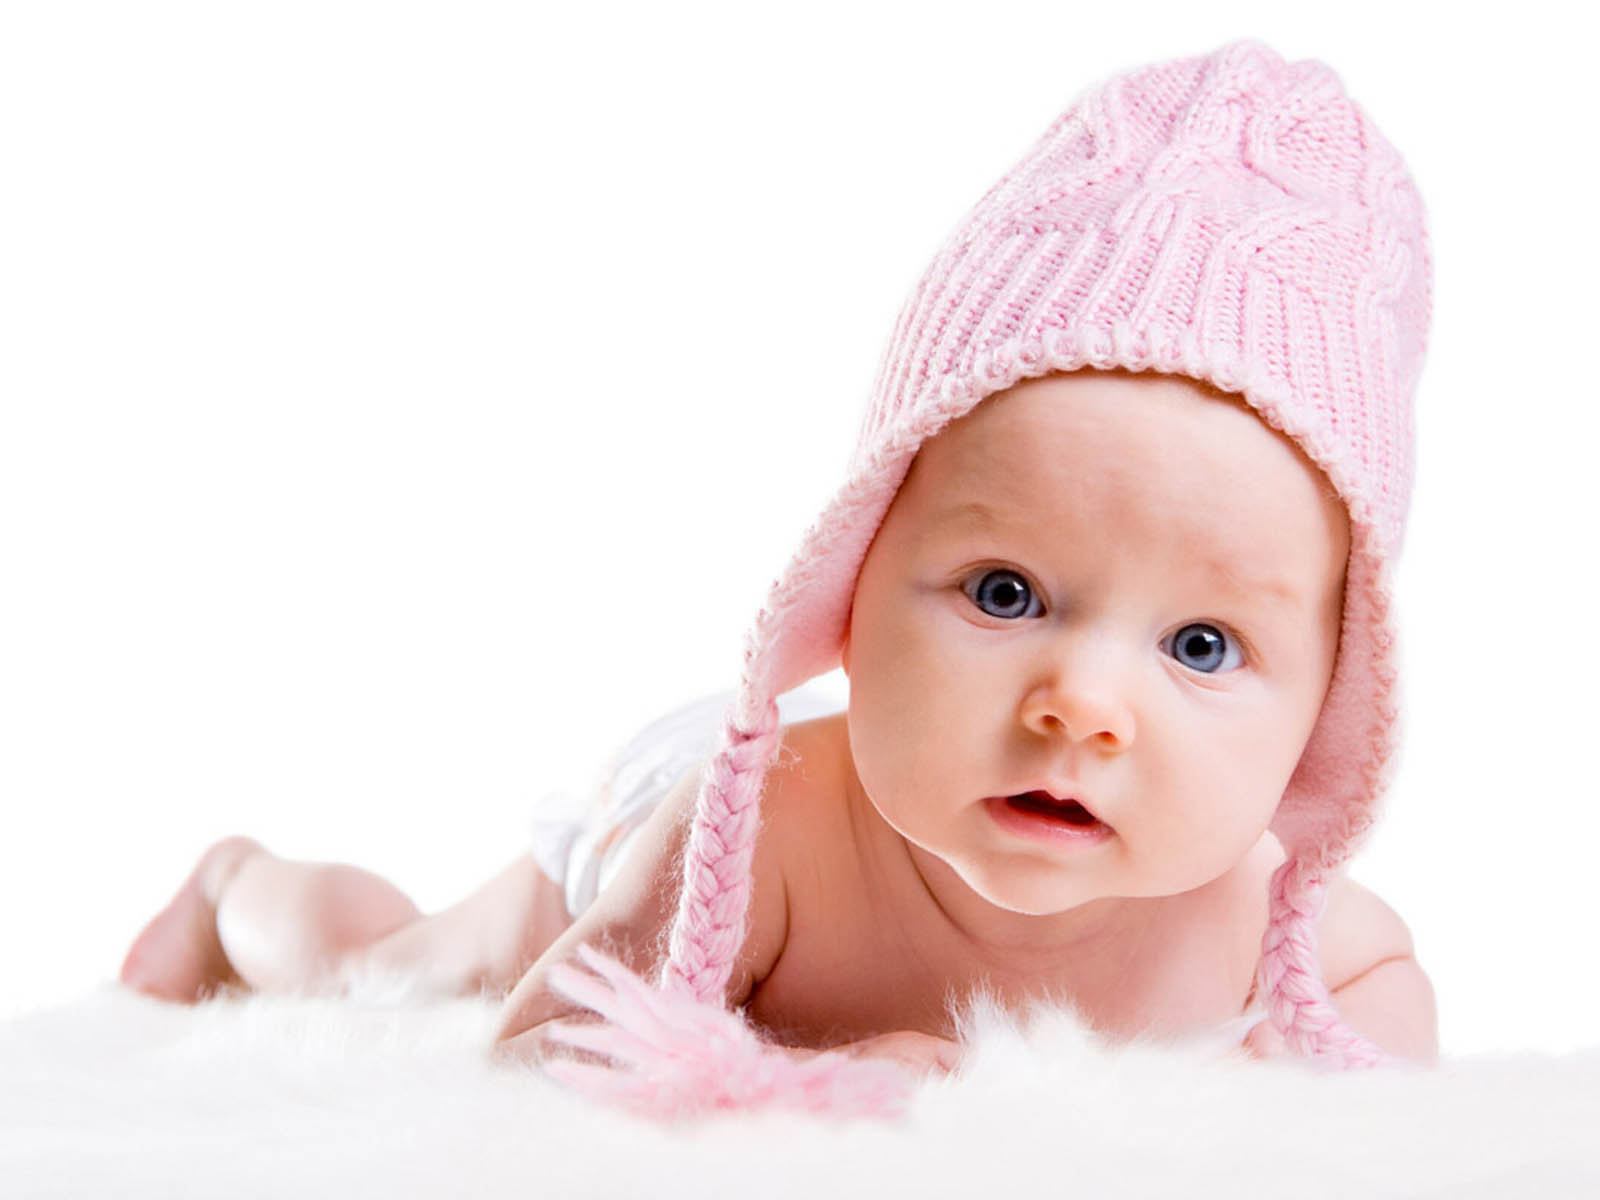 Baby Wallpapers Images Photos Pictures and Backgrounds for 1600x1200